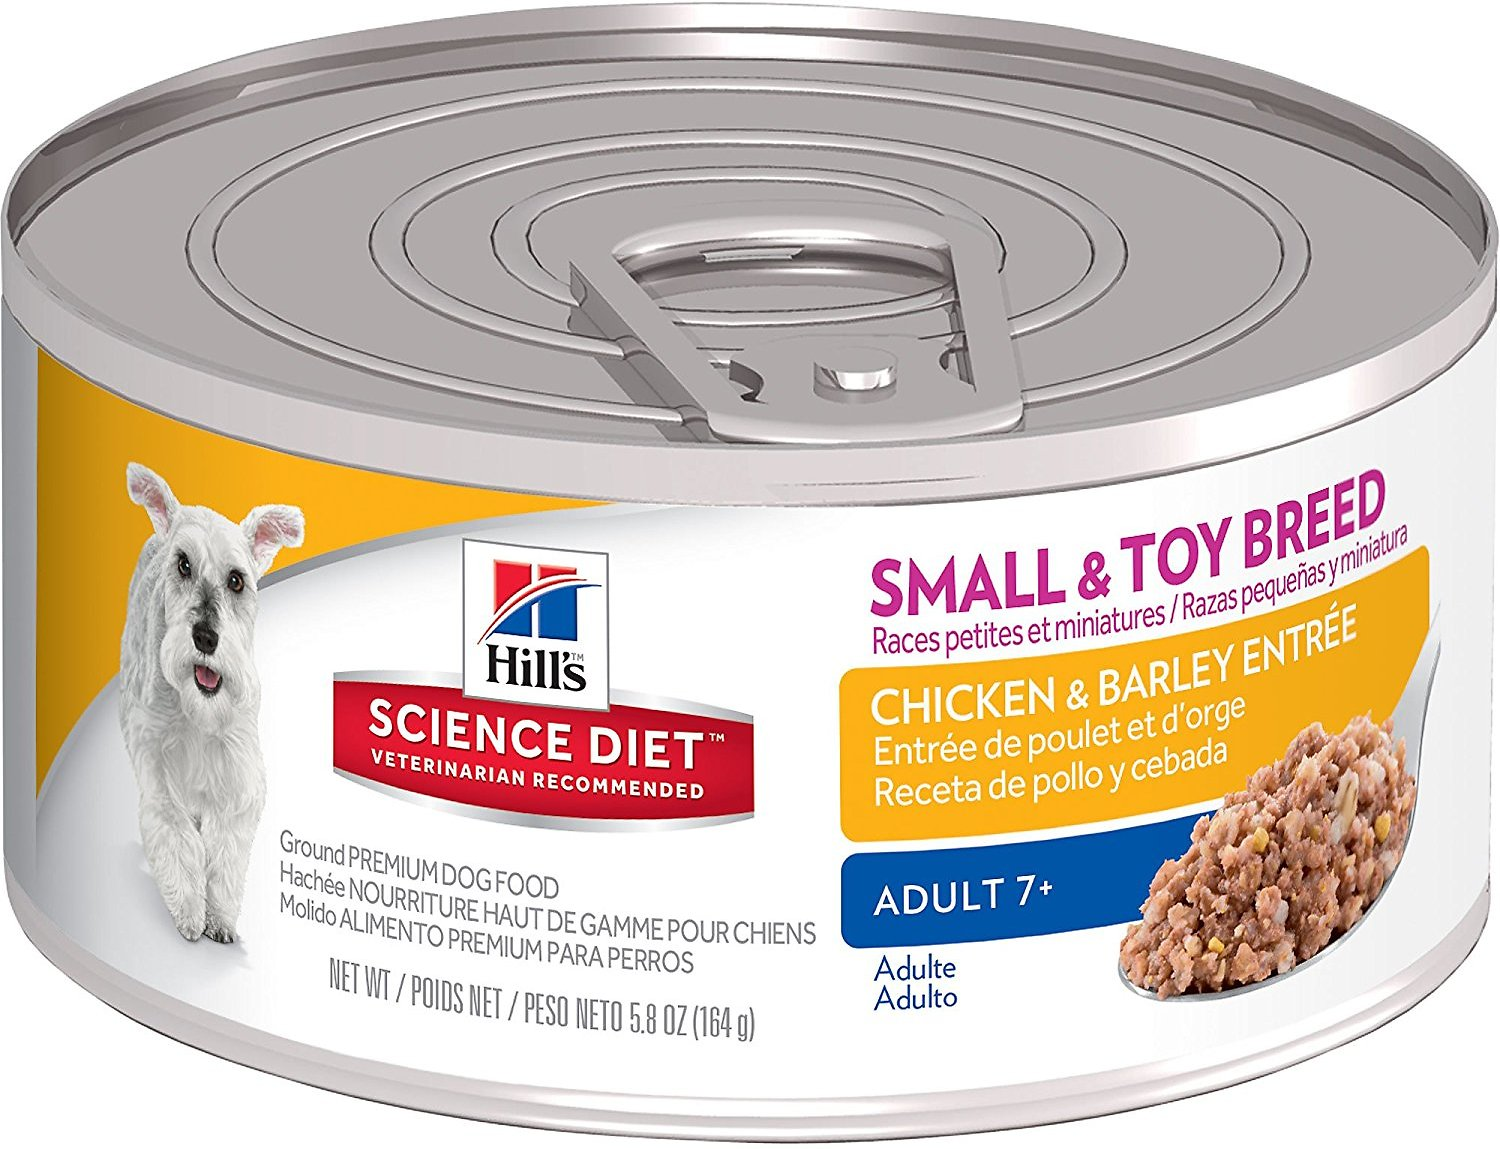 Hill's Science Diet Adult 7+ Small & Toy Breed Chicken & Barley Entree Canned Dog Food, 5.8-oz